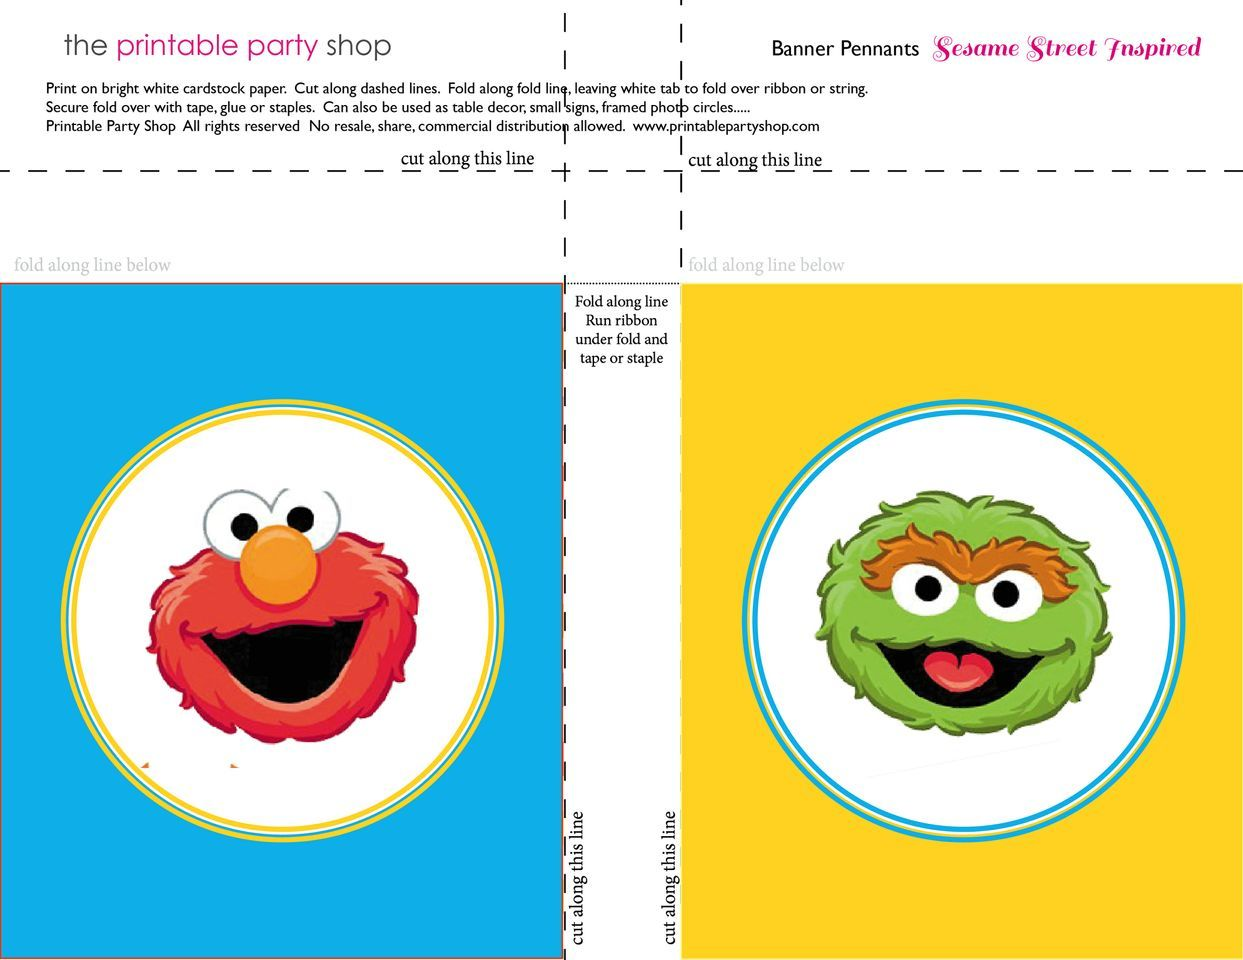 It's just a picture of Ambitious Printable Sesame Street Characters